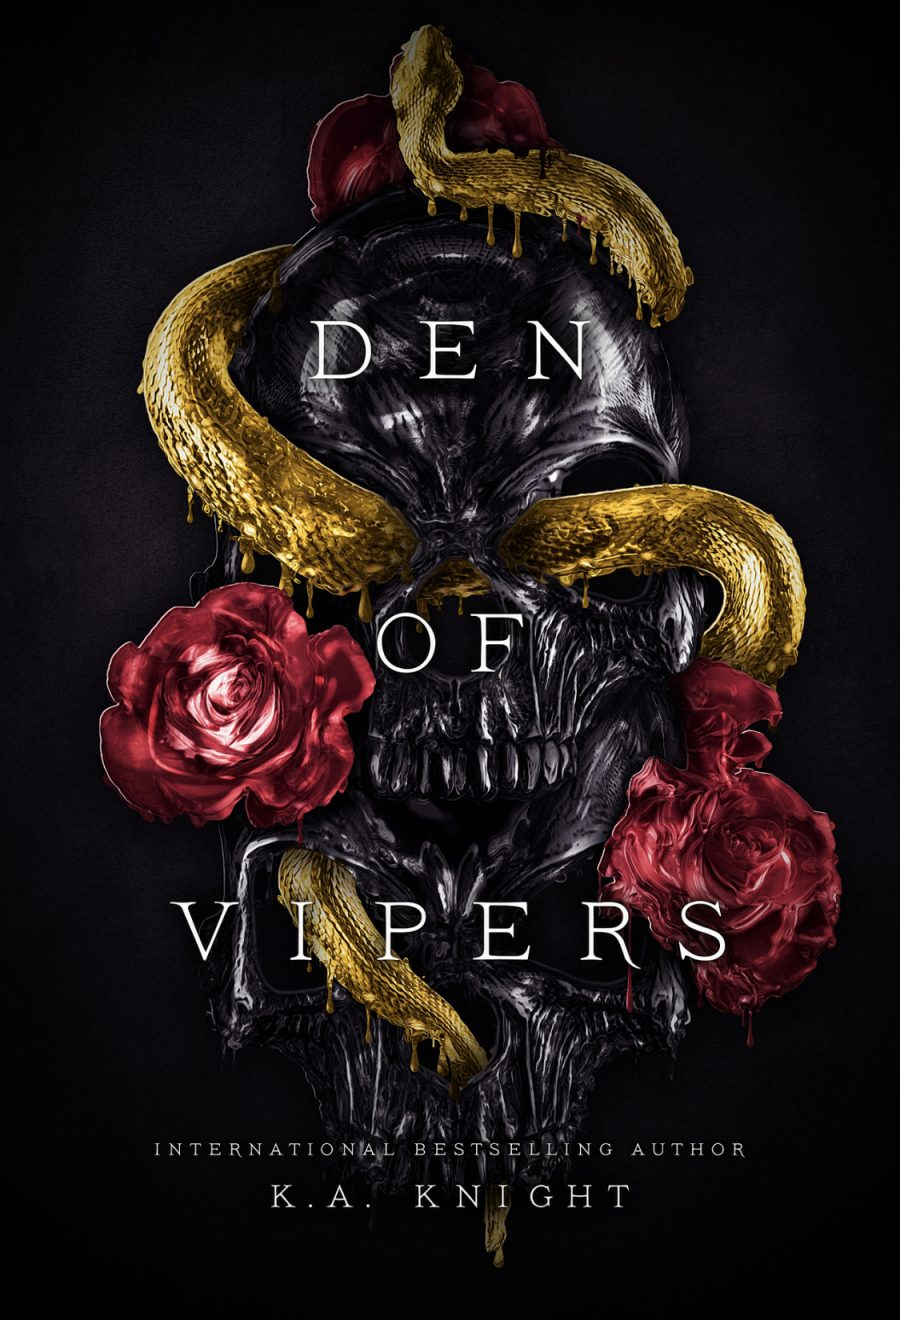 Den of Vipers by K.A. Knight - A Book Review #BookReview #Dark #StandAlone #RH #Mafia #HEA #4Stars #KindleUnlimited #KU